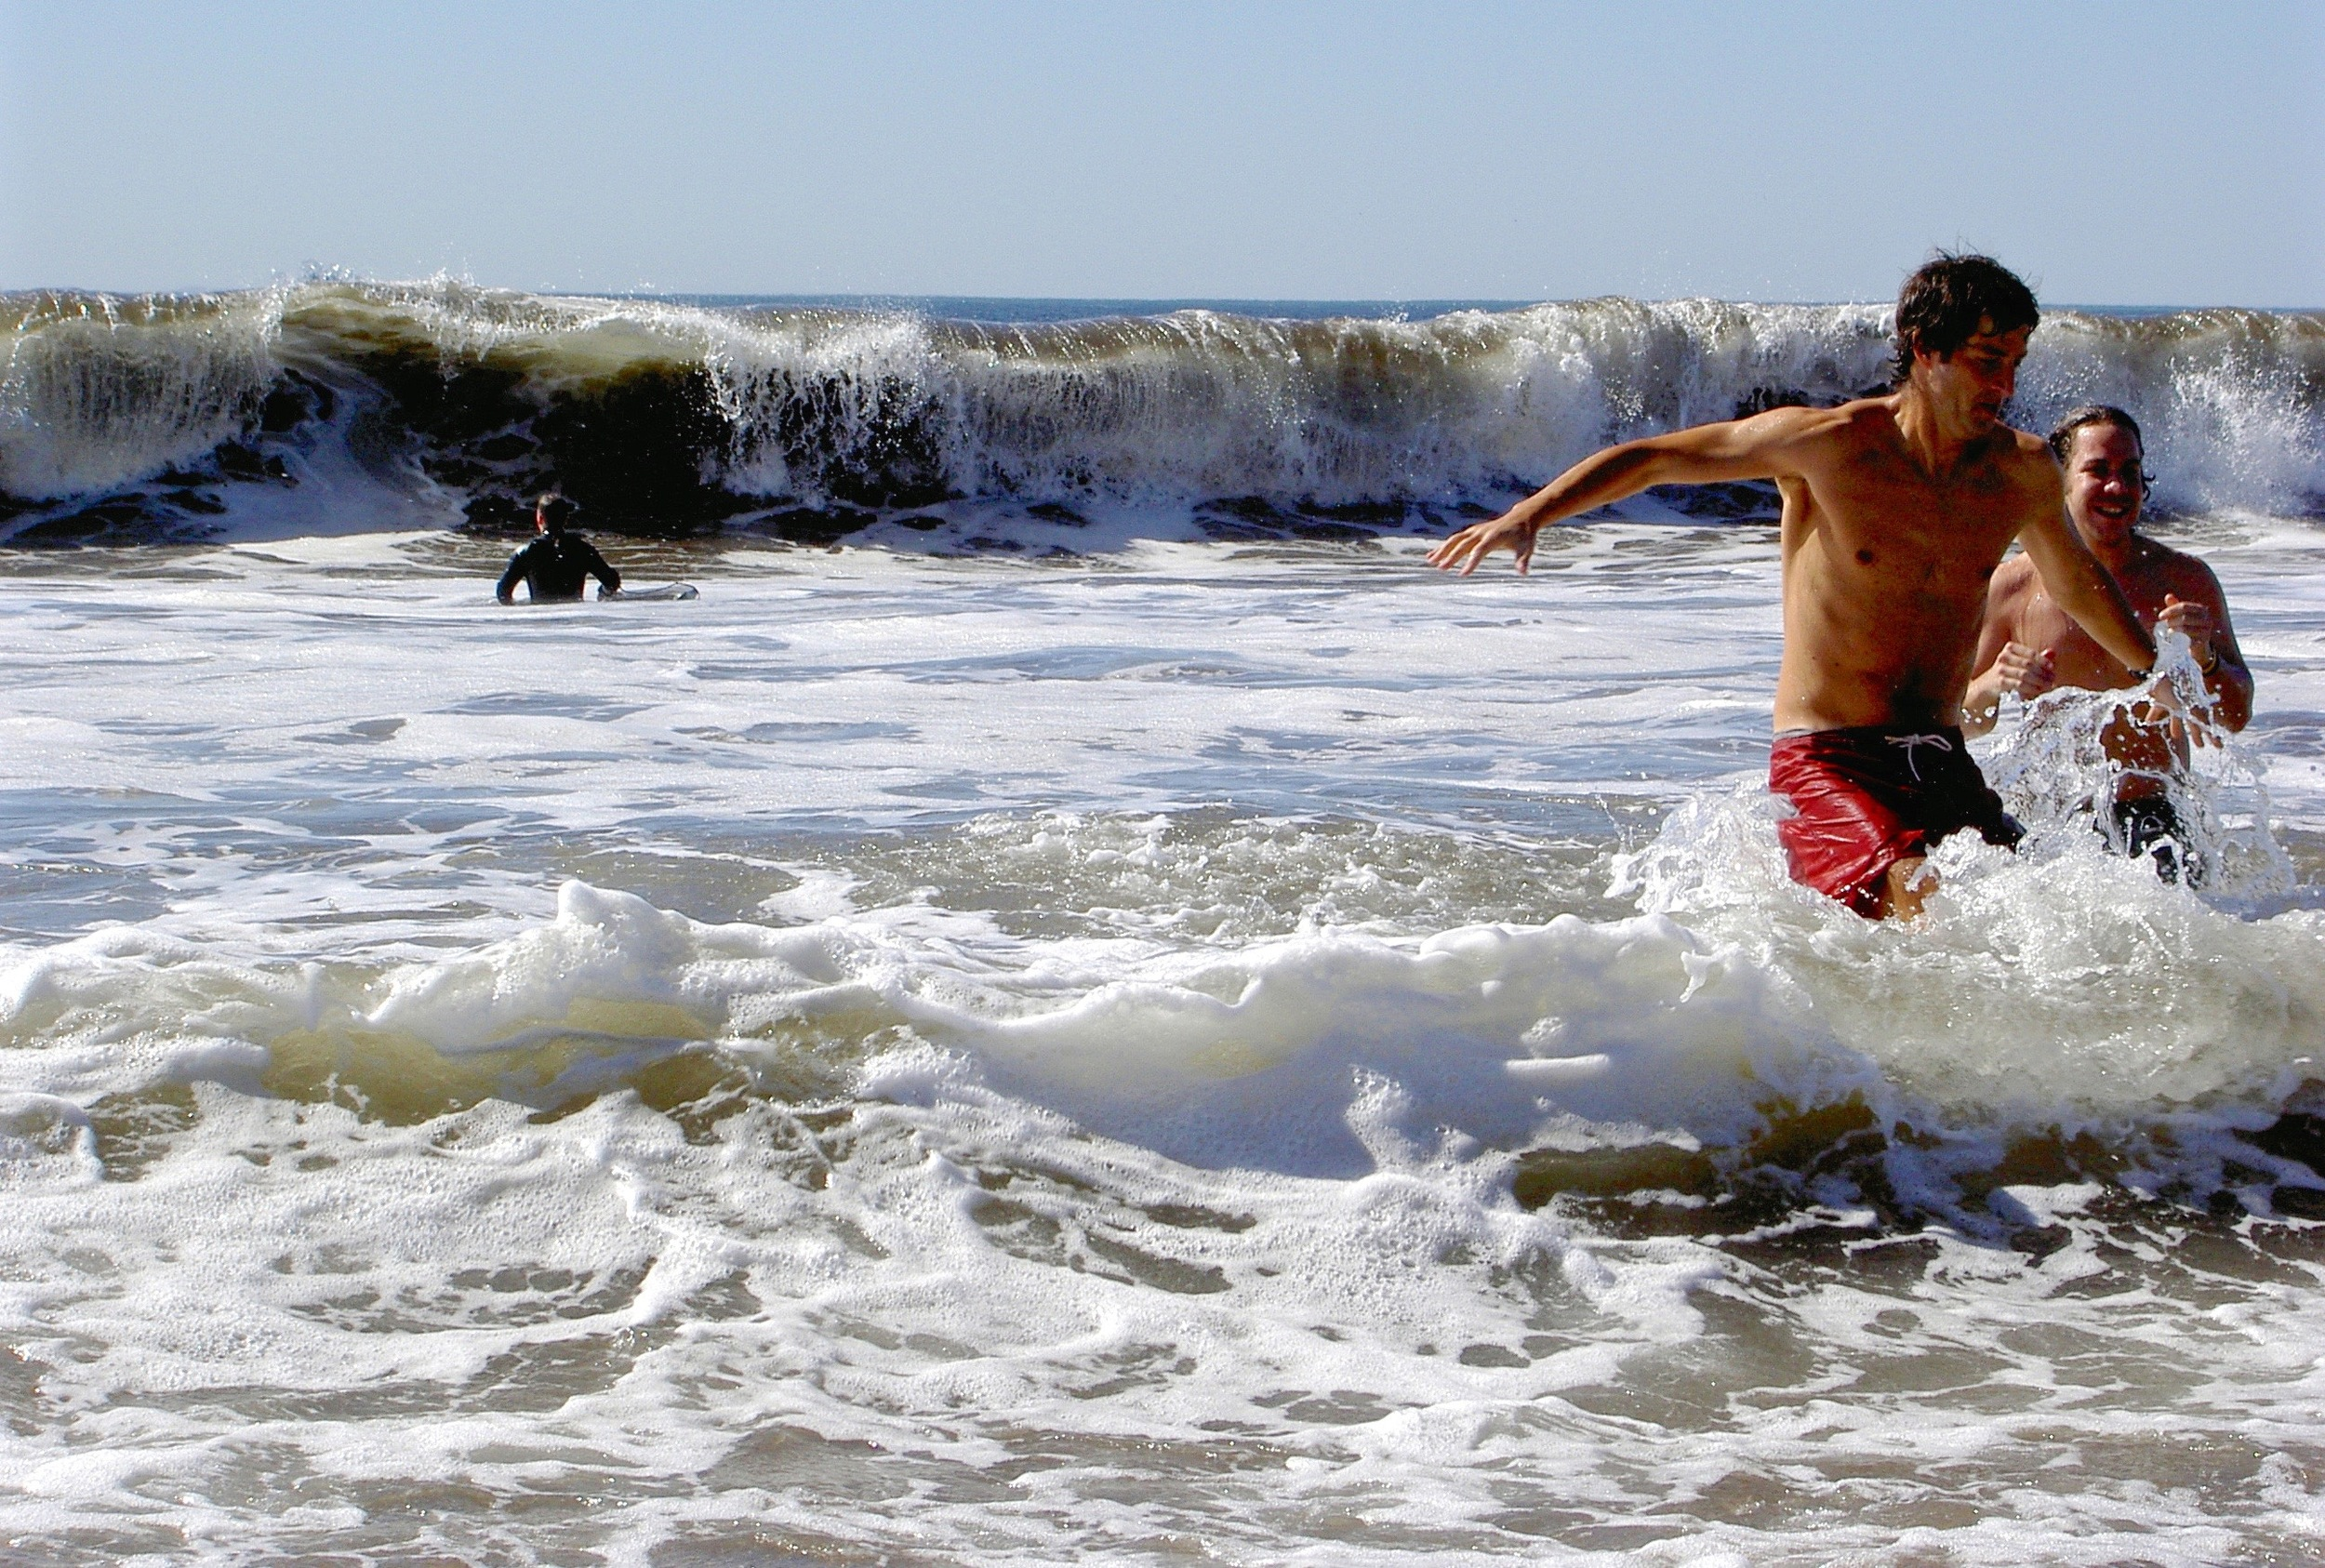 Boogie boarders ride the foam onto the Stinson beach shoreline.